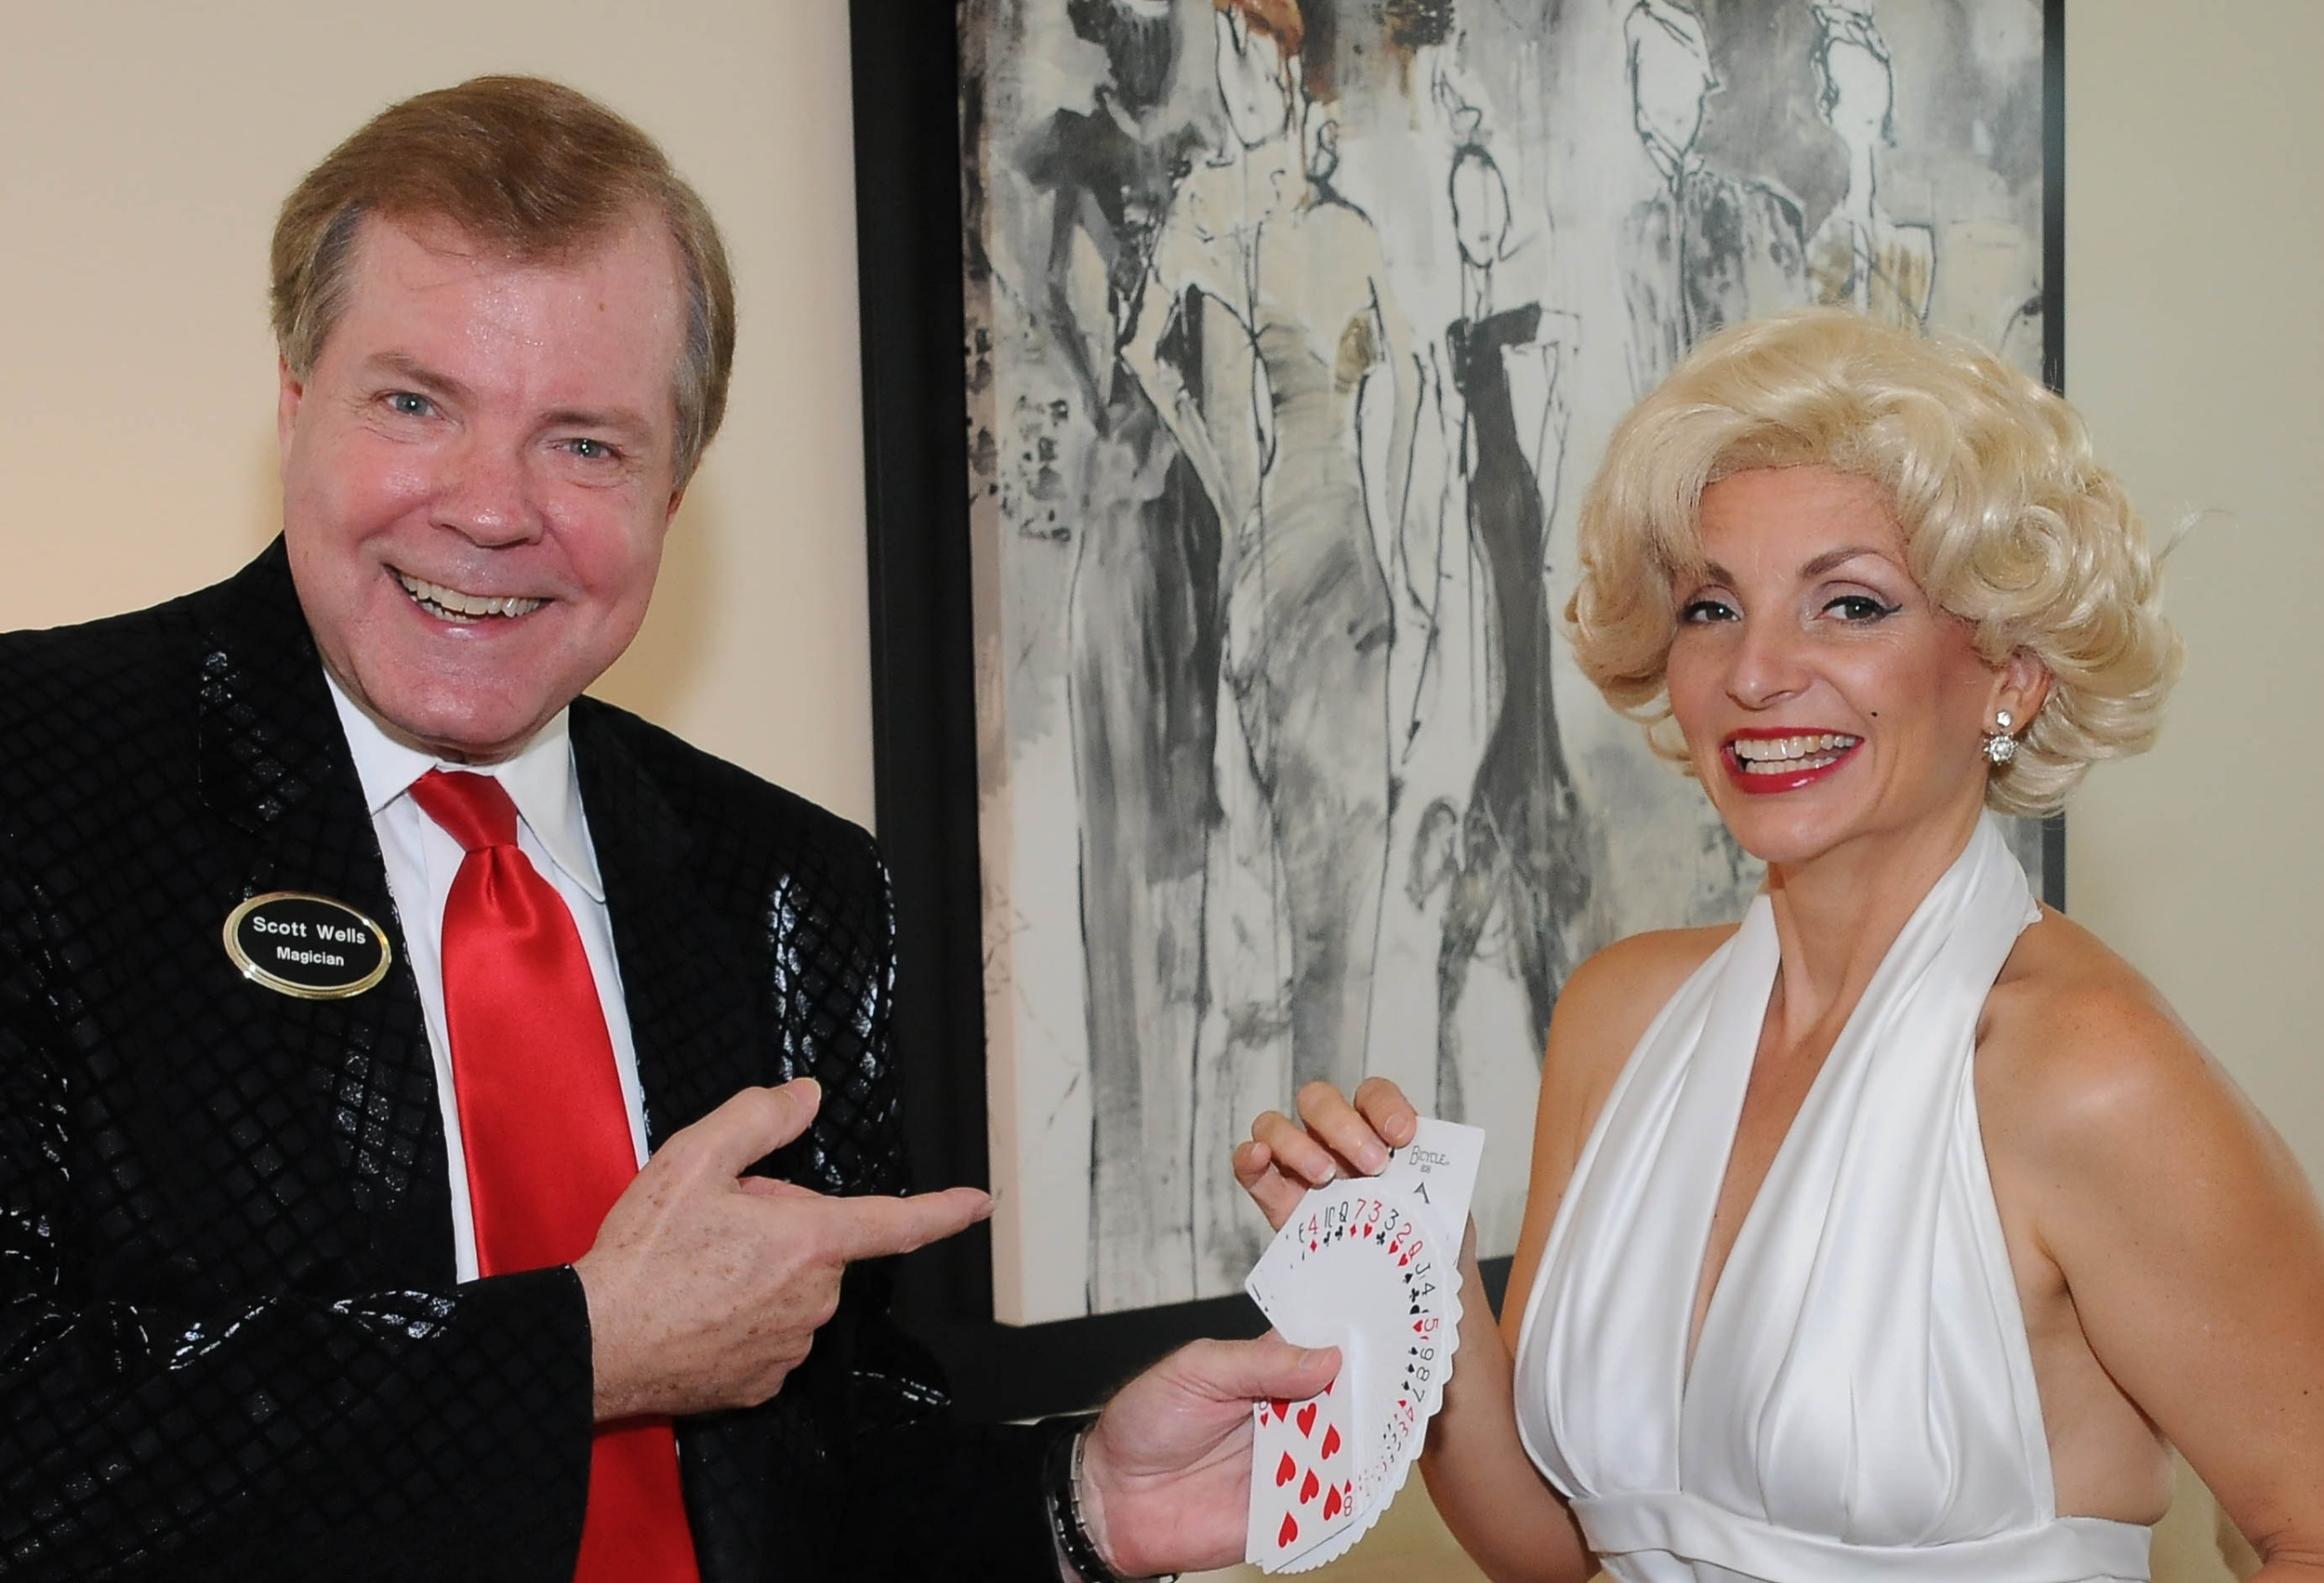 I performed a strolling show on Thursday that had a gambling theme. They also had food, drink, music, and...oh yeah, Marilyn Monroe.